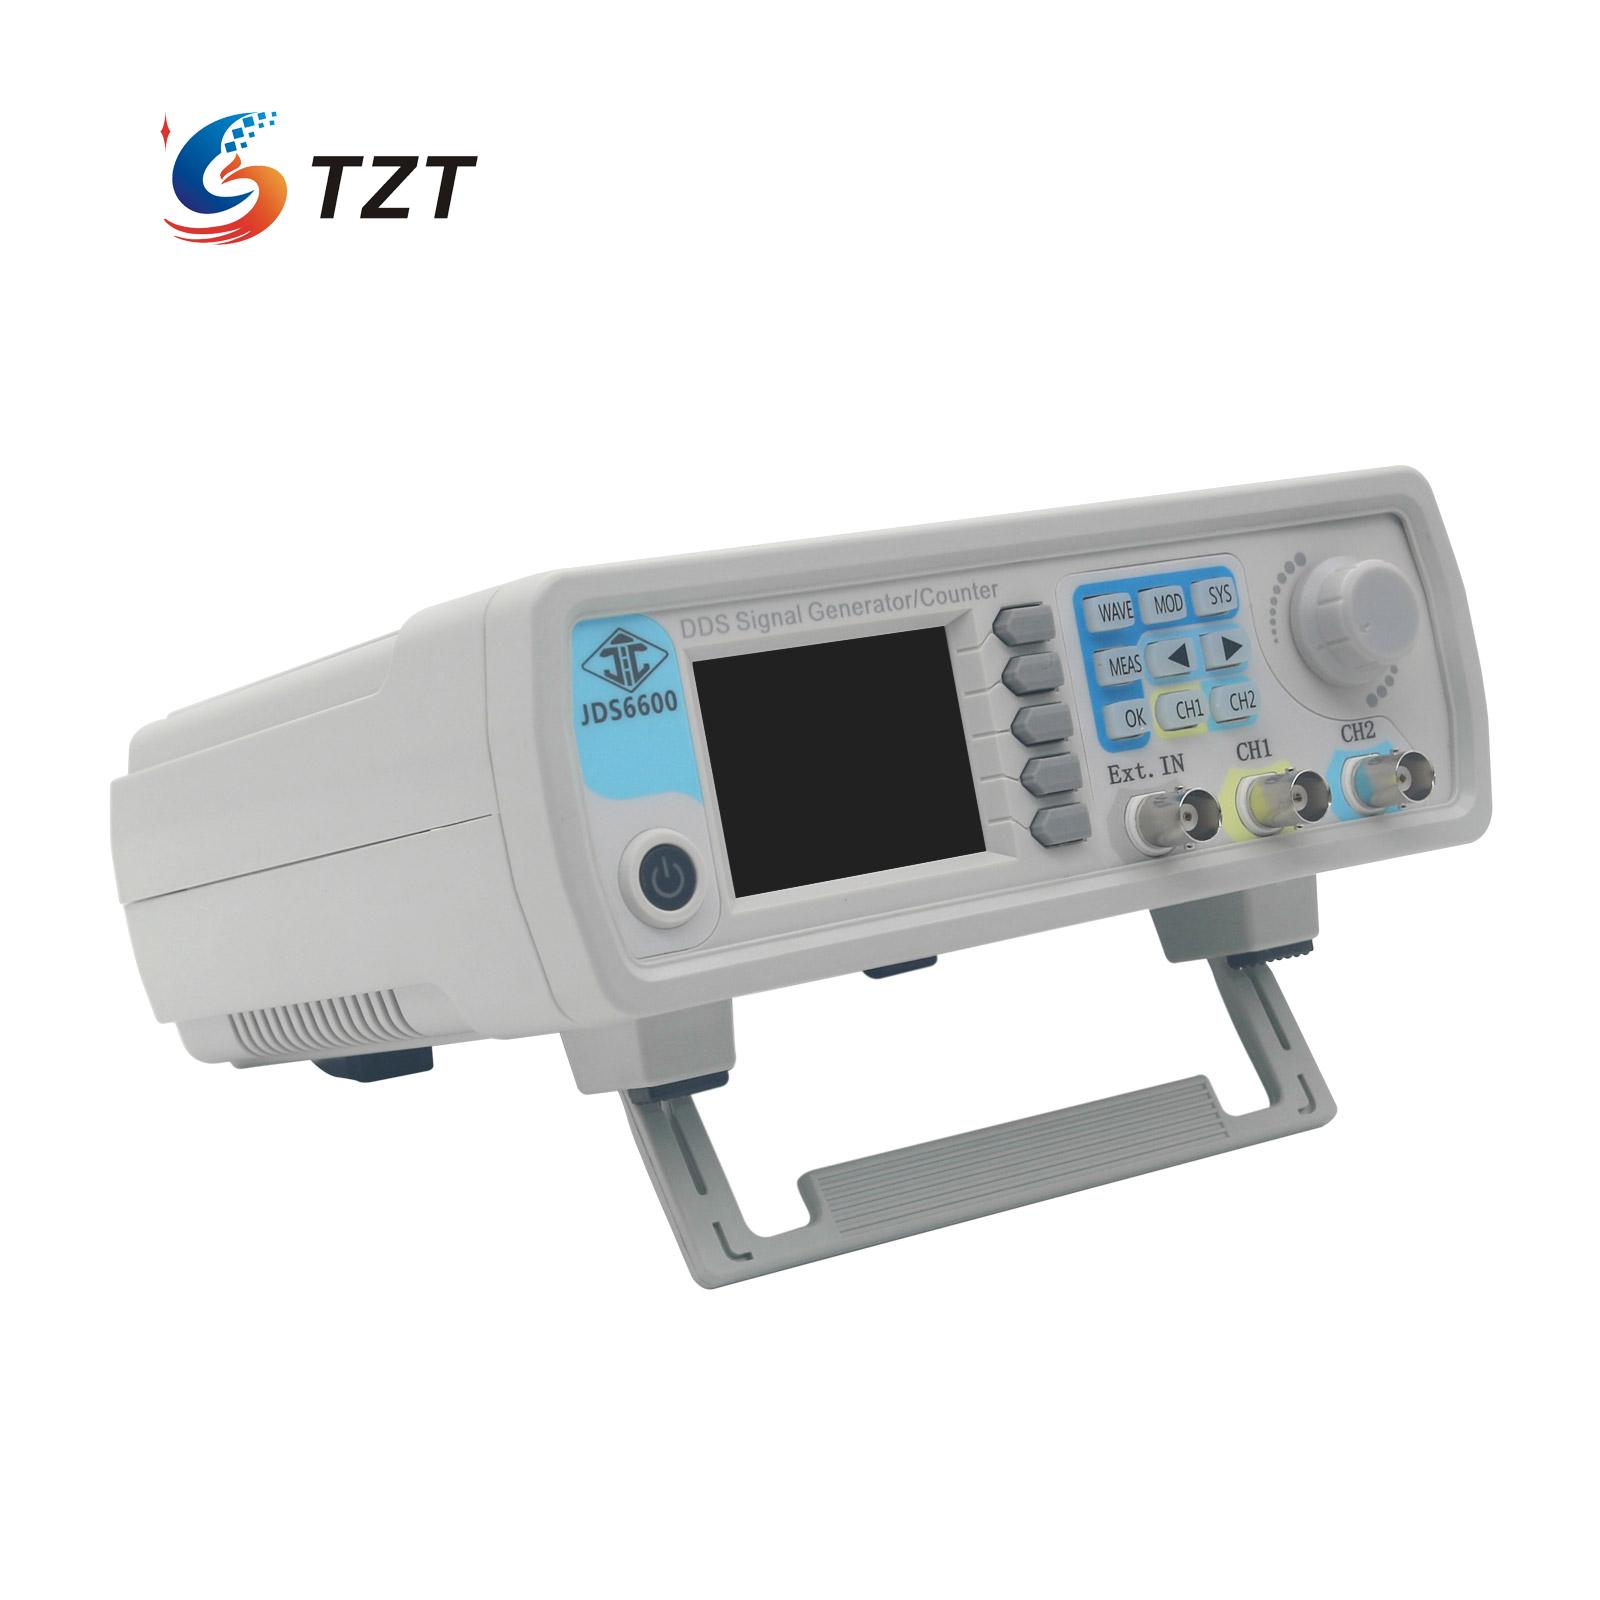 JDS6600 15M/30M/40M/50M Dual Channel Function Arbitrary Waveform Signal Generator Pulse Signal Source Frequency Meter akg pae5 m